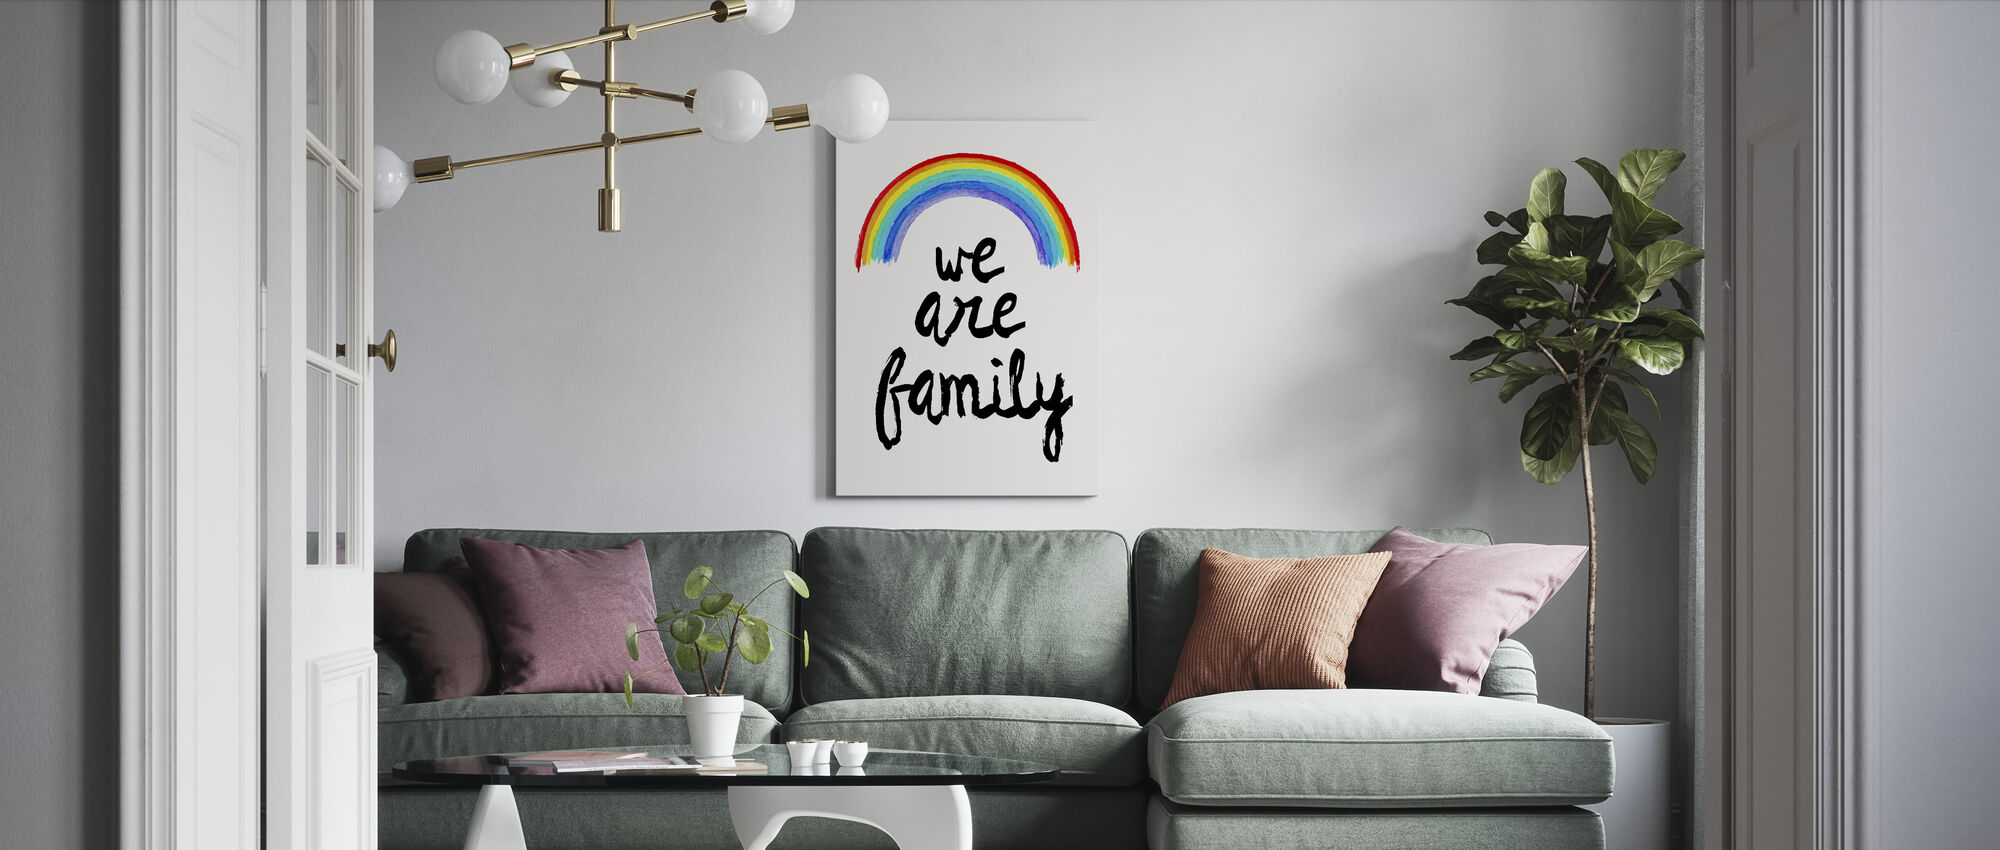 We are Family - Canvas print - Living Room